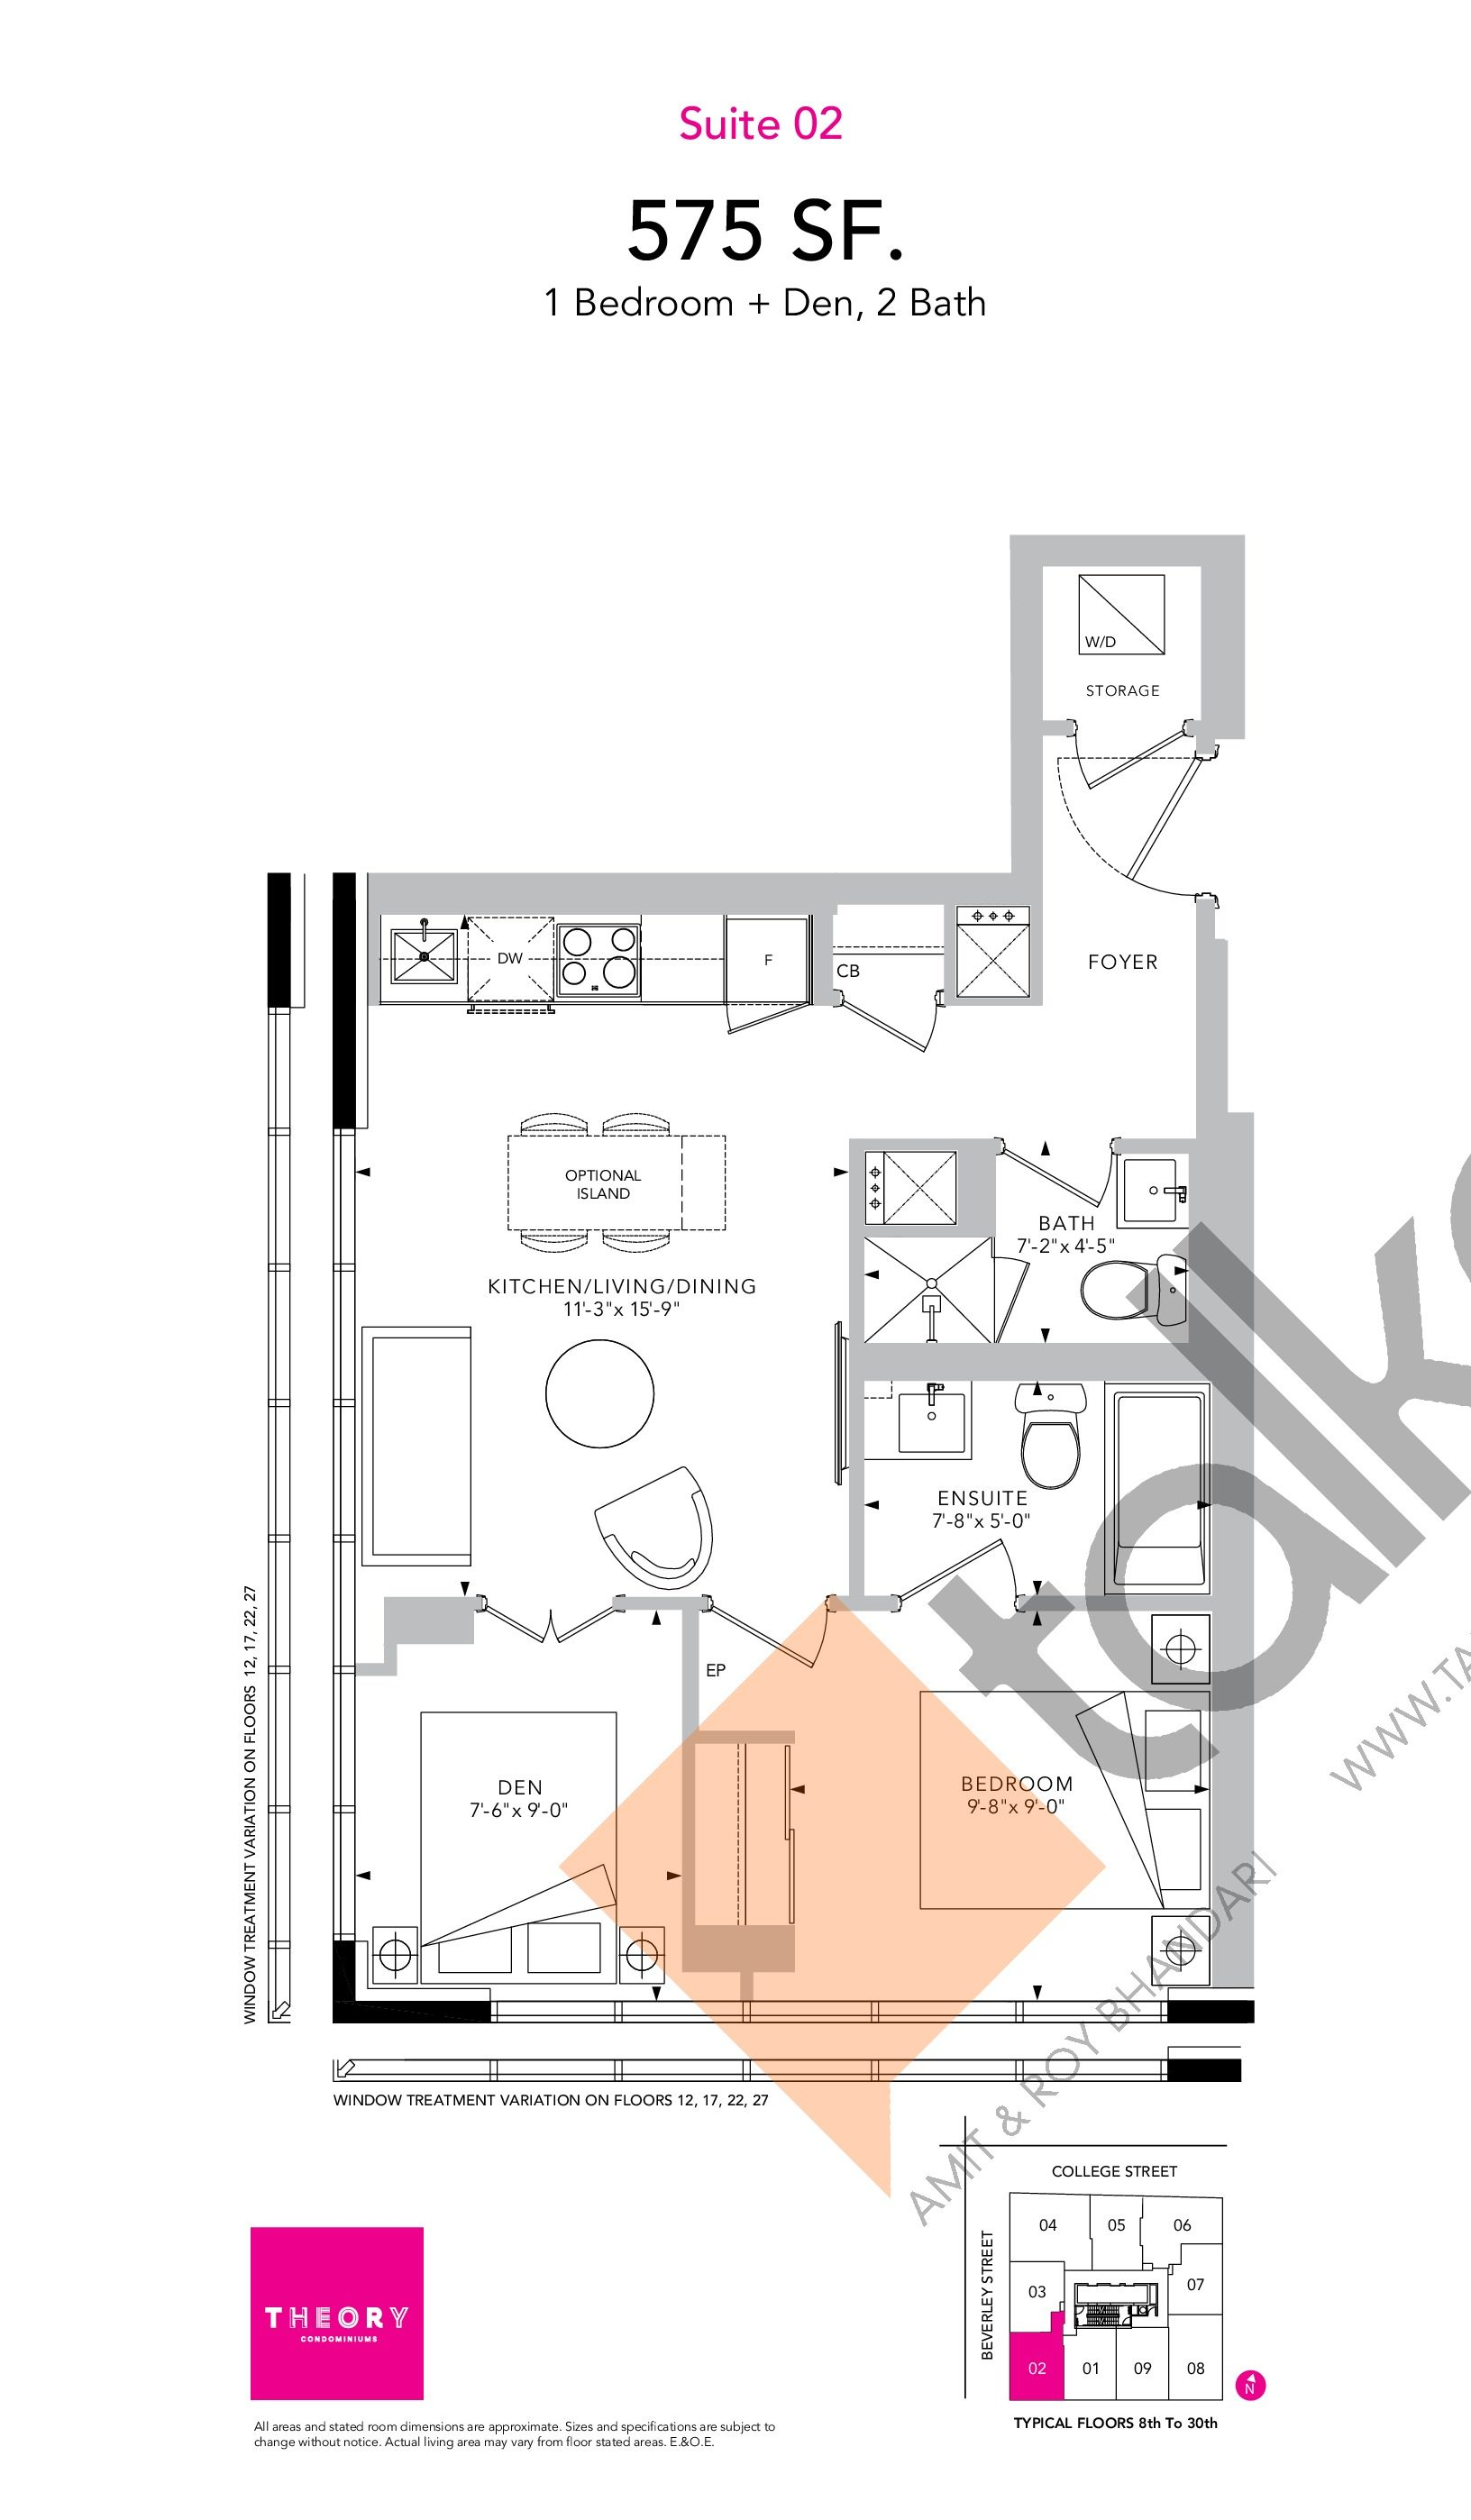 Suite 02 Floor Plan at Theory Condos - 575 sq.ft